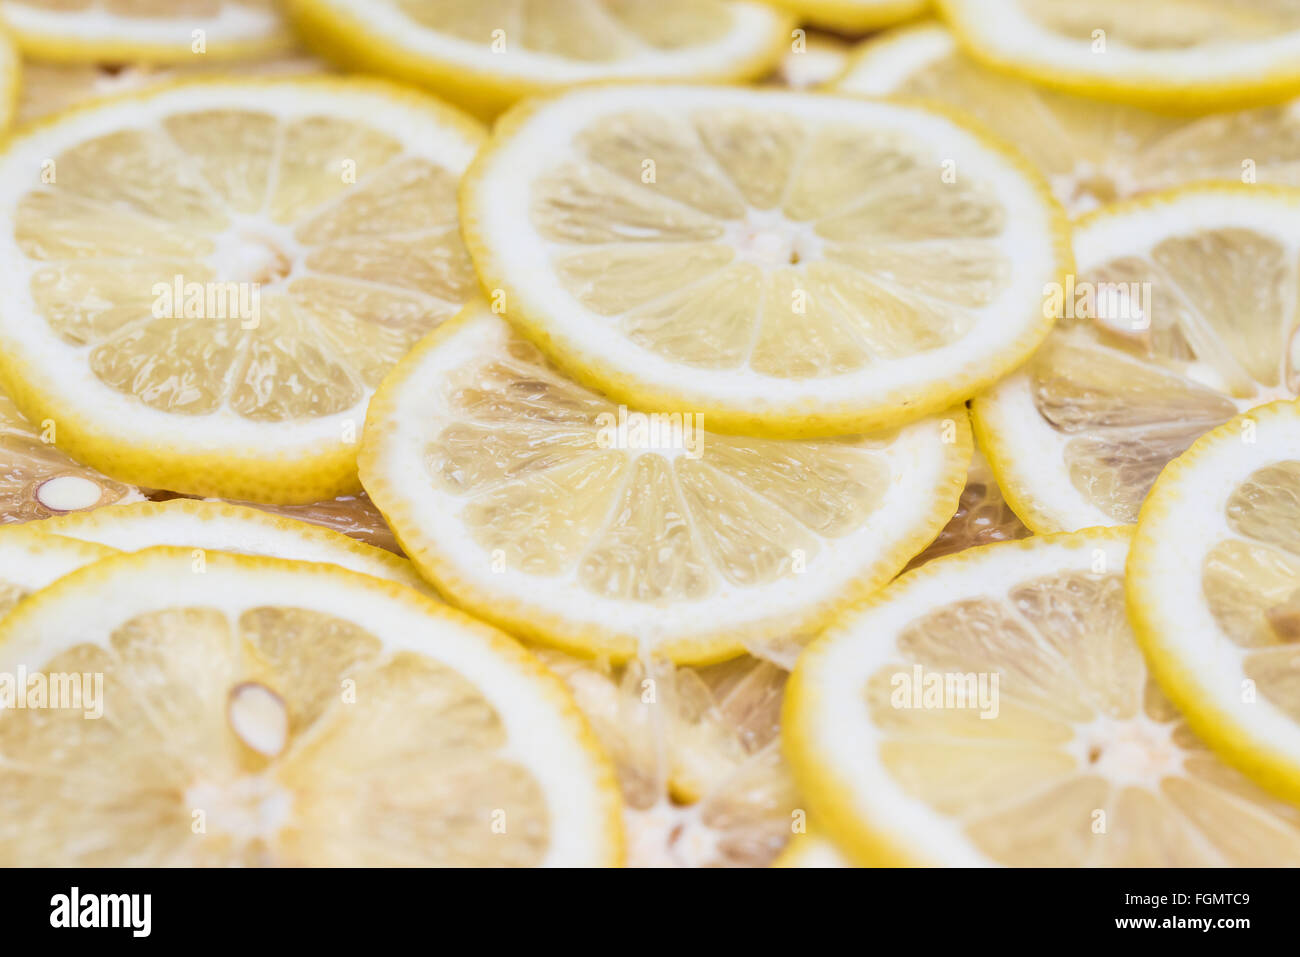 background made with slices of lemon - Stock Image